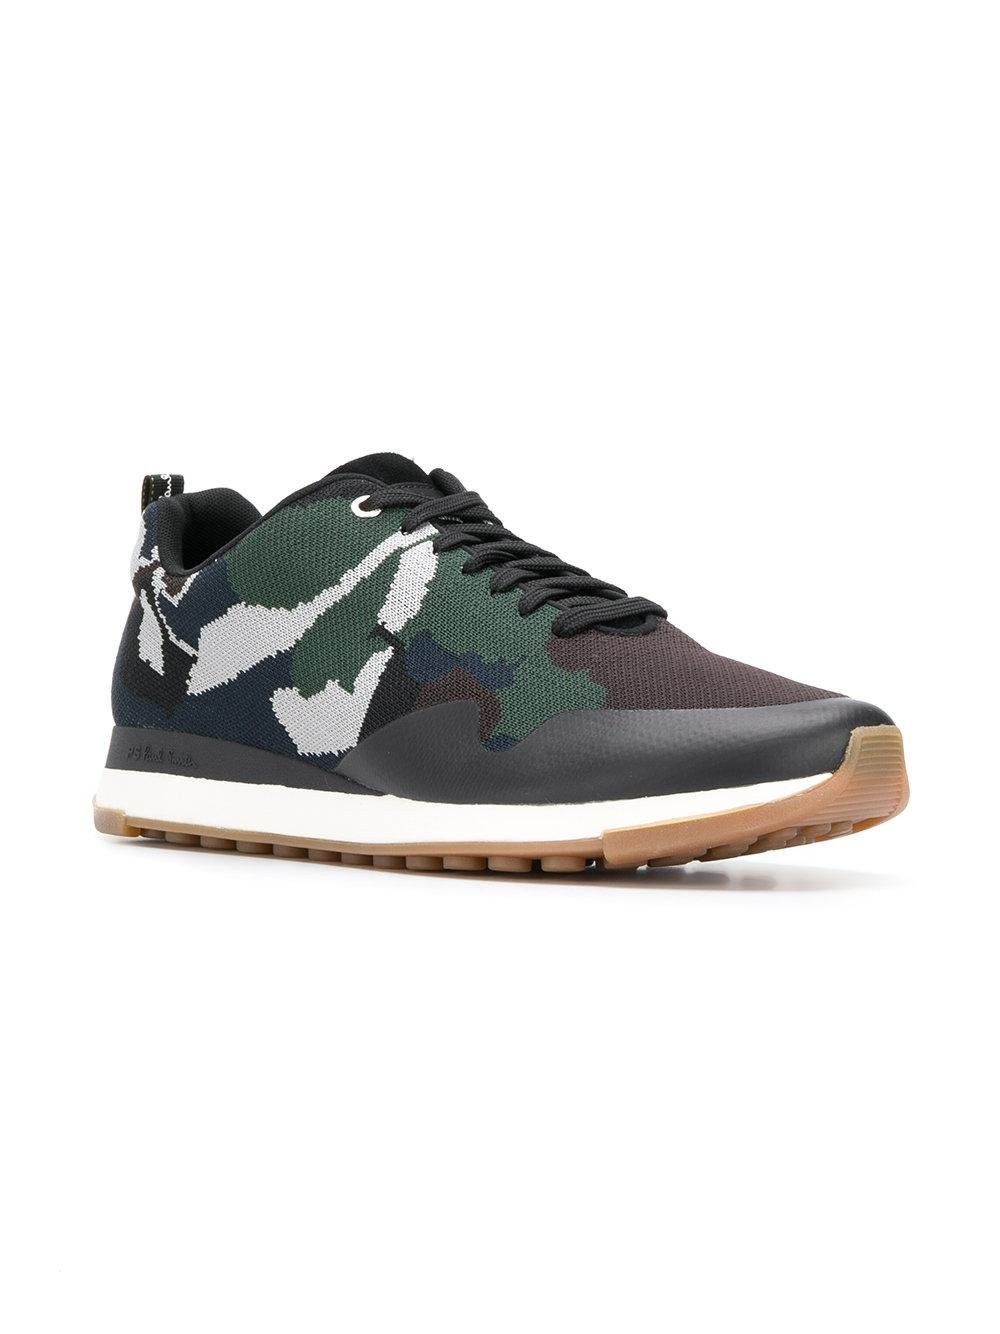 free shipping discounts Ps By Paul Smith Rappid camouflage sneakers with credit card clearance recommend newest cheap online WSua2h9